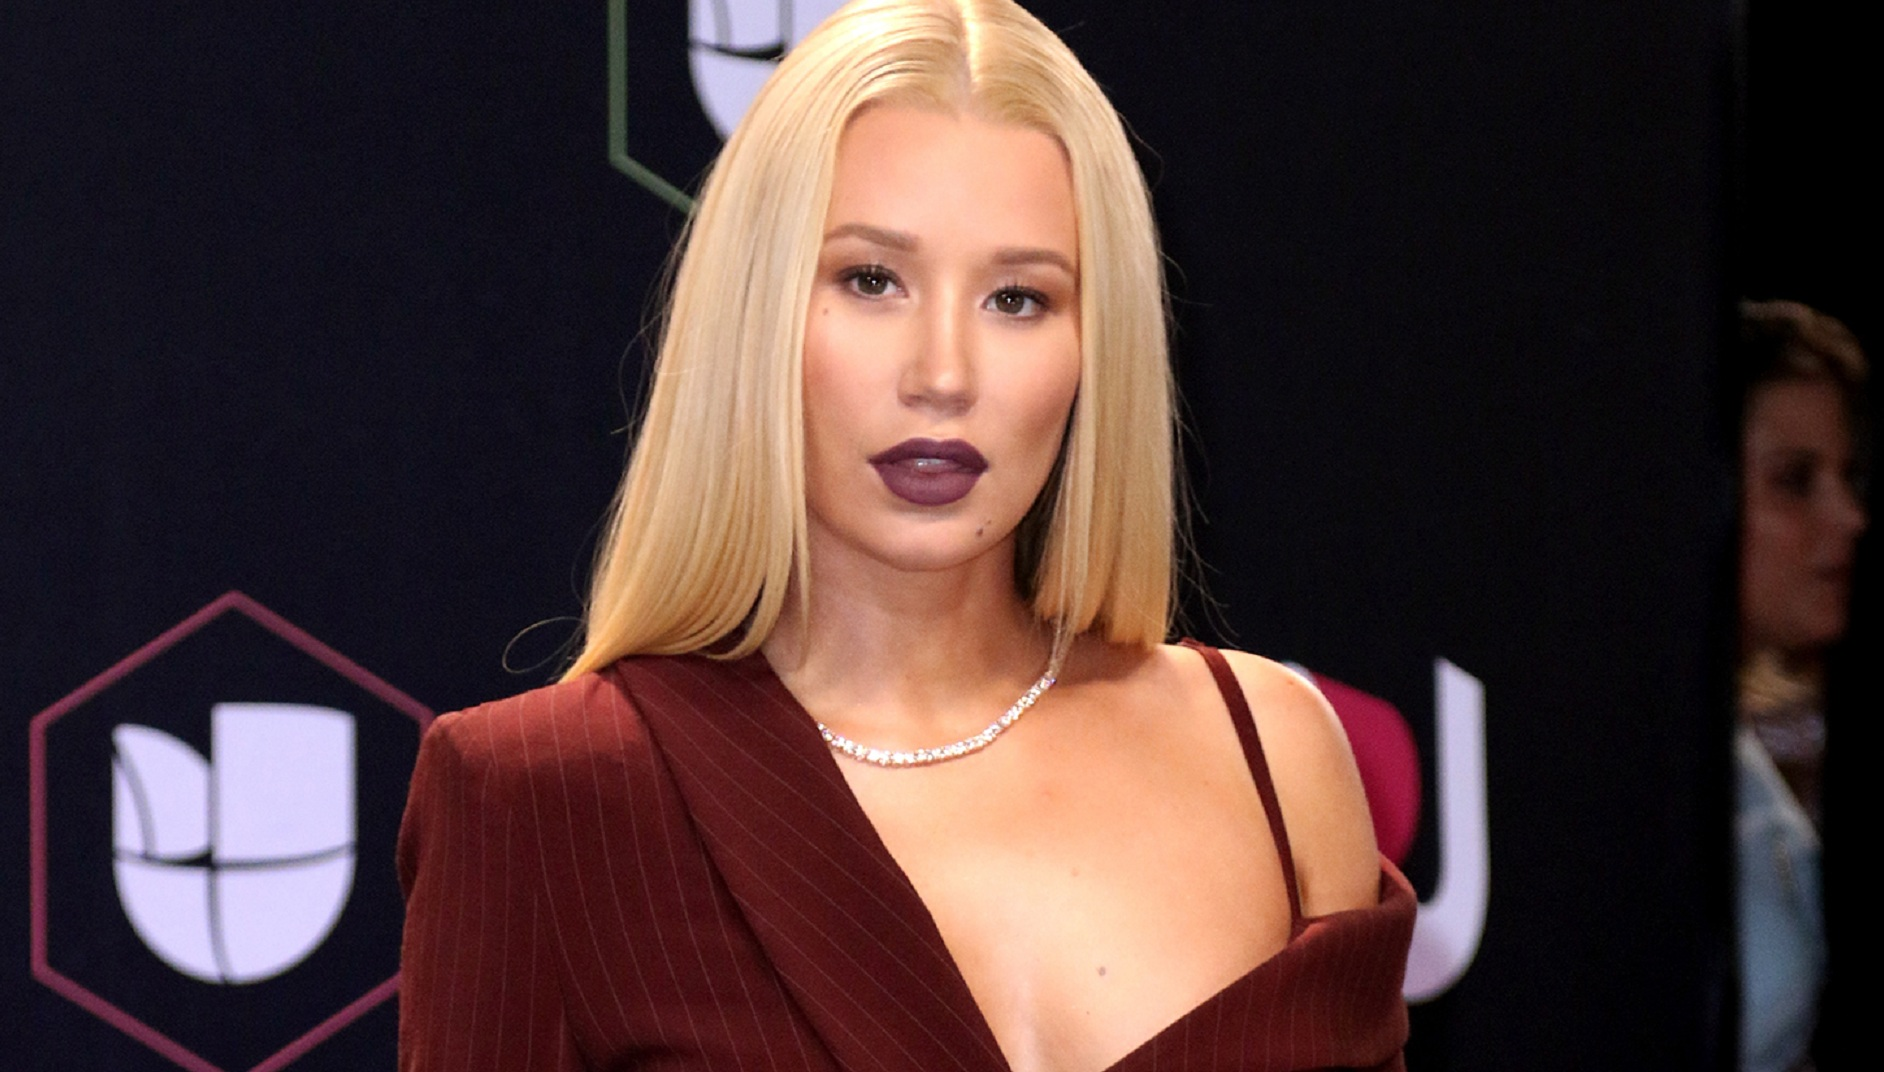 After A Couple Of Career-Lows, Iggy Azalea Bags New $2.7 Million Music Deal